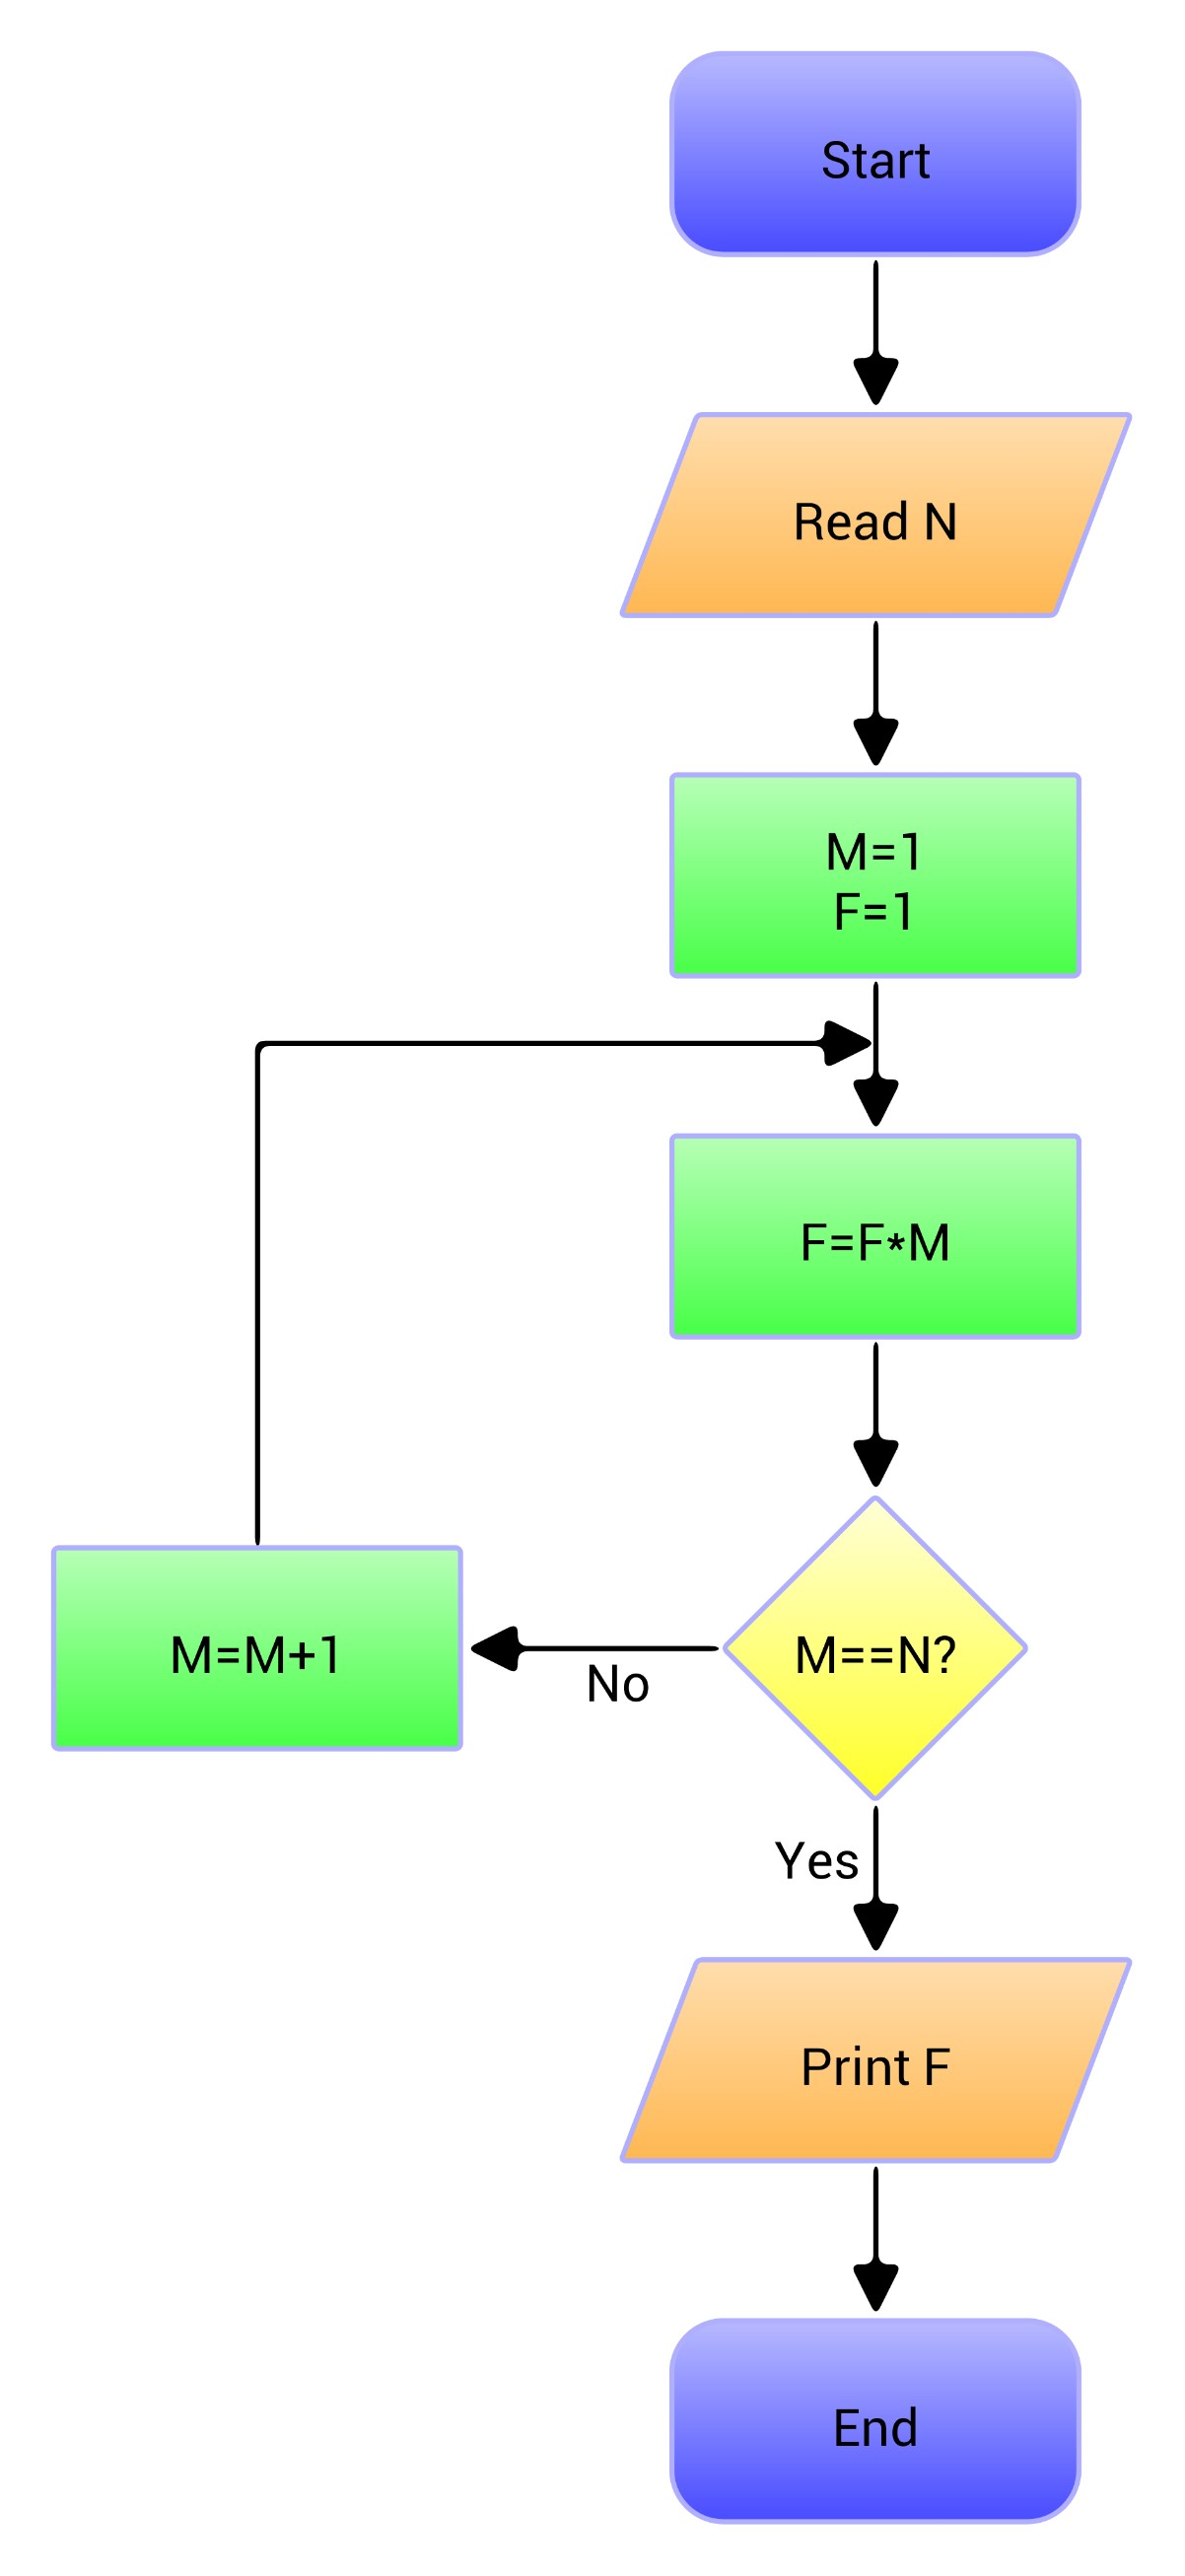 Photo: Factorial flowchart exported by Polydia as PNG